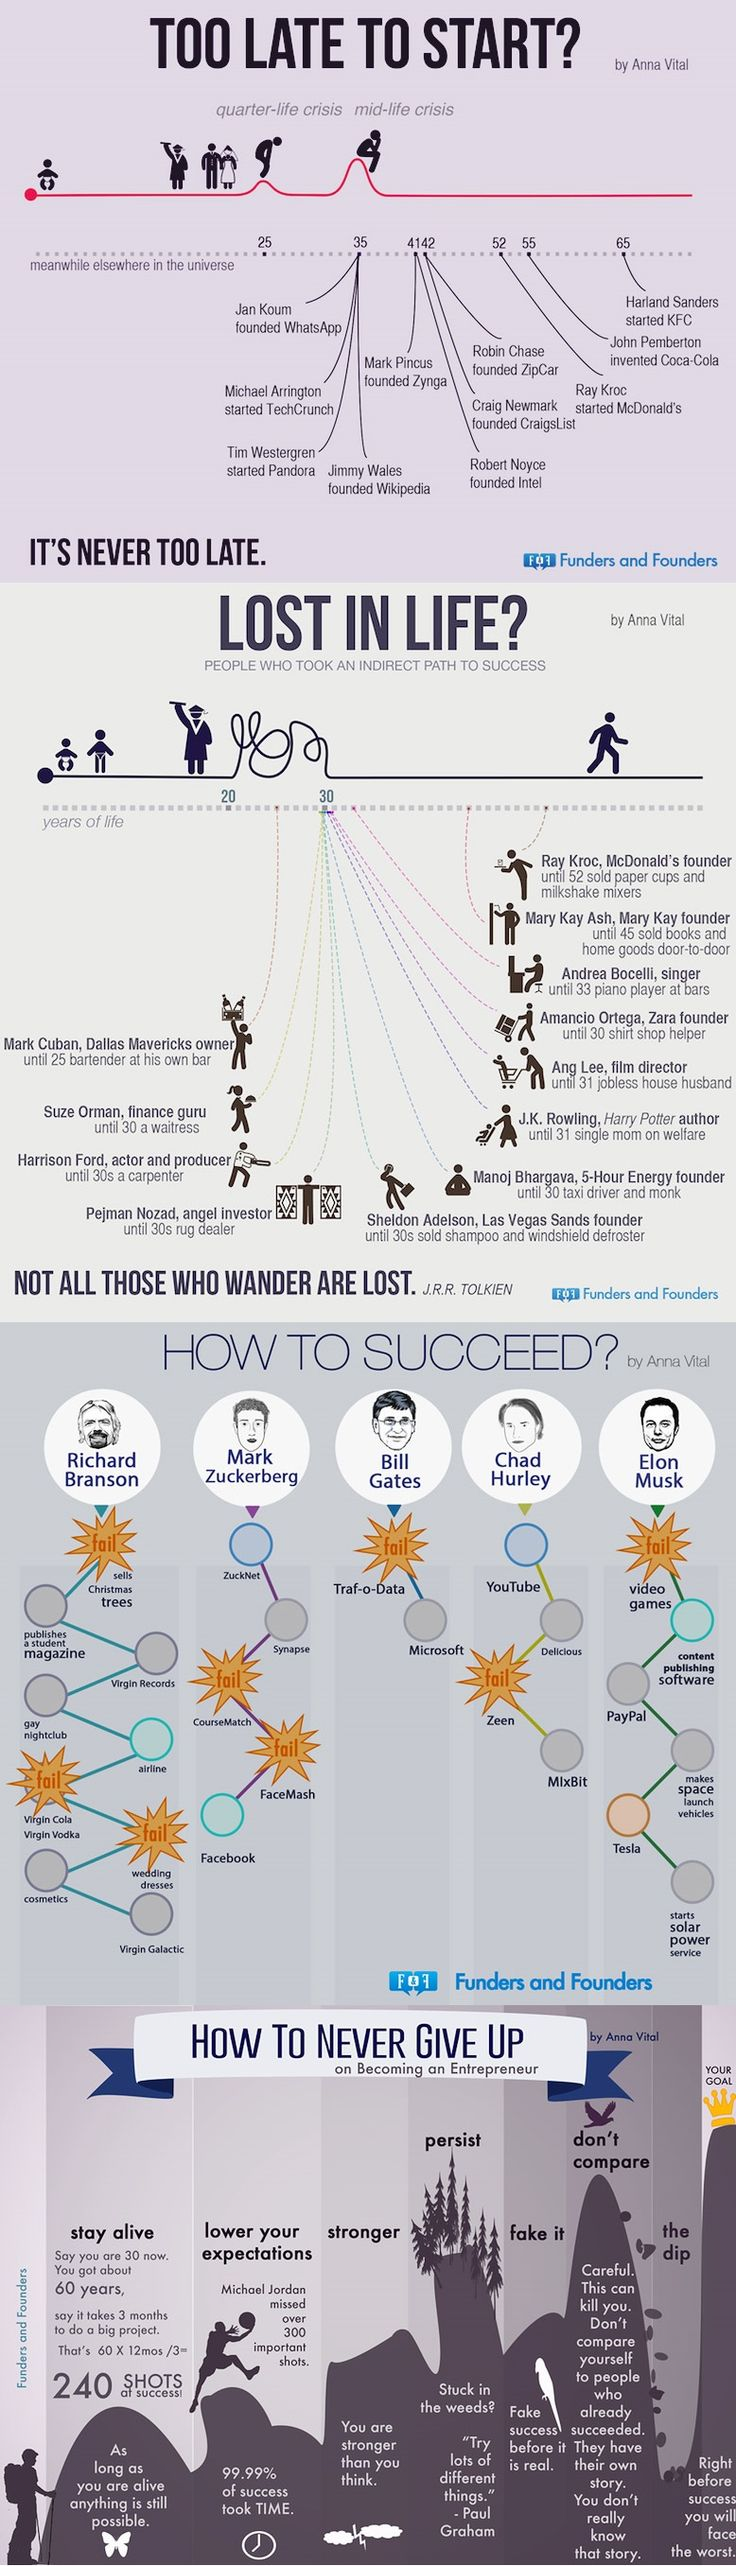 This week's #MondayMorningMotivation speaks for itself. What an inspiring infographic!  Source: www.reddit.com/